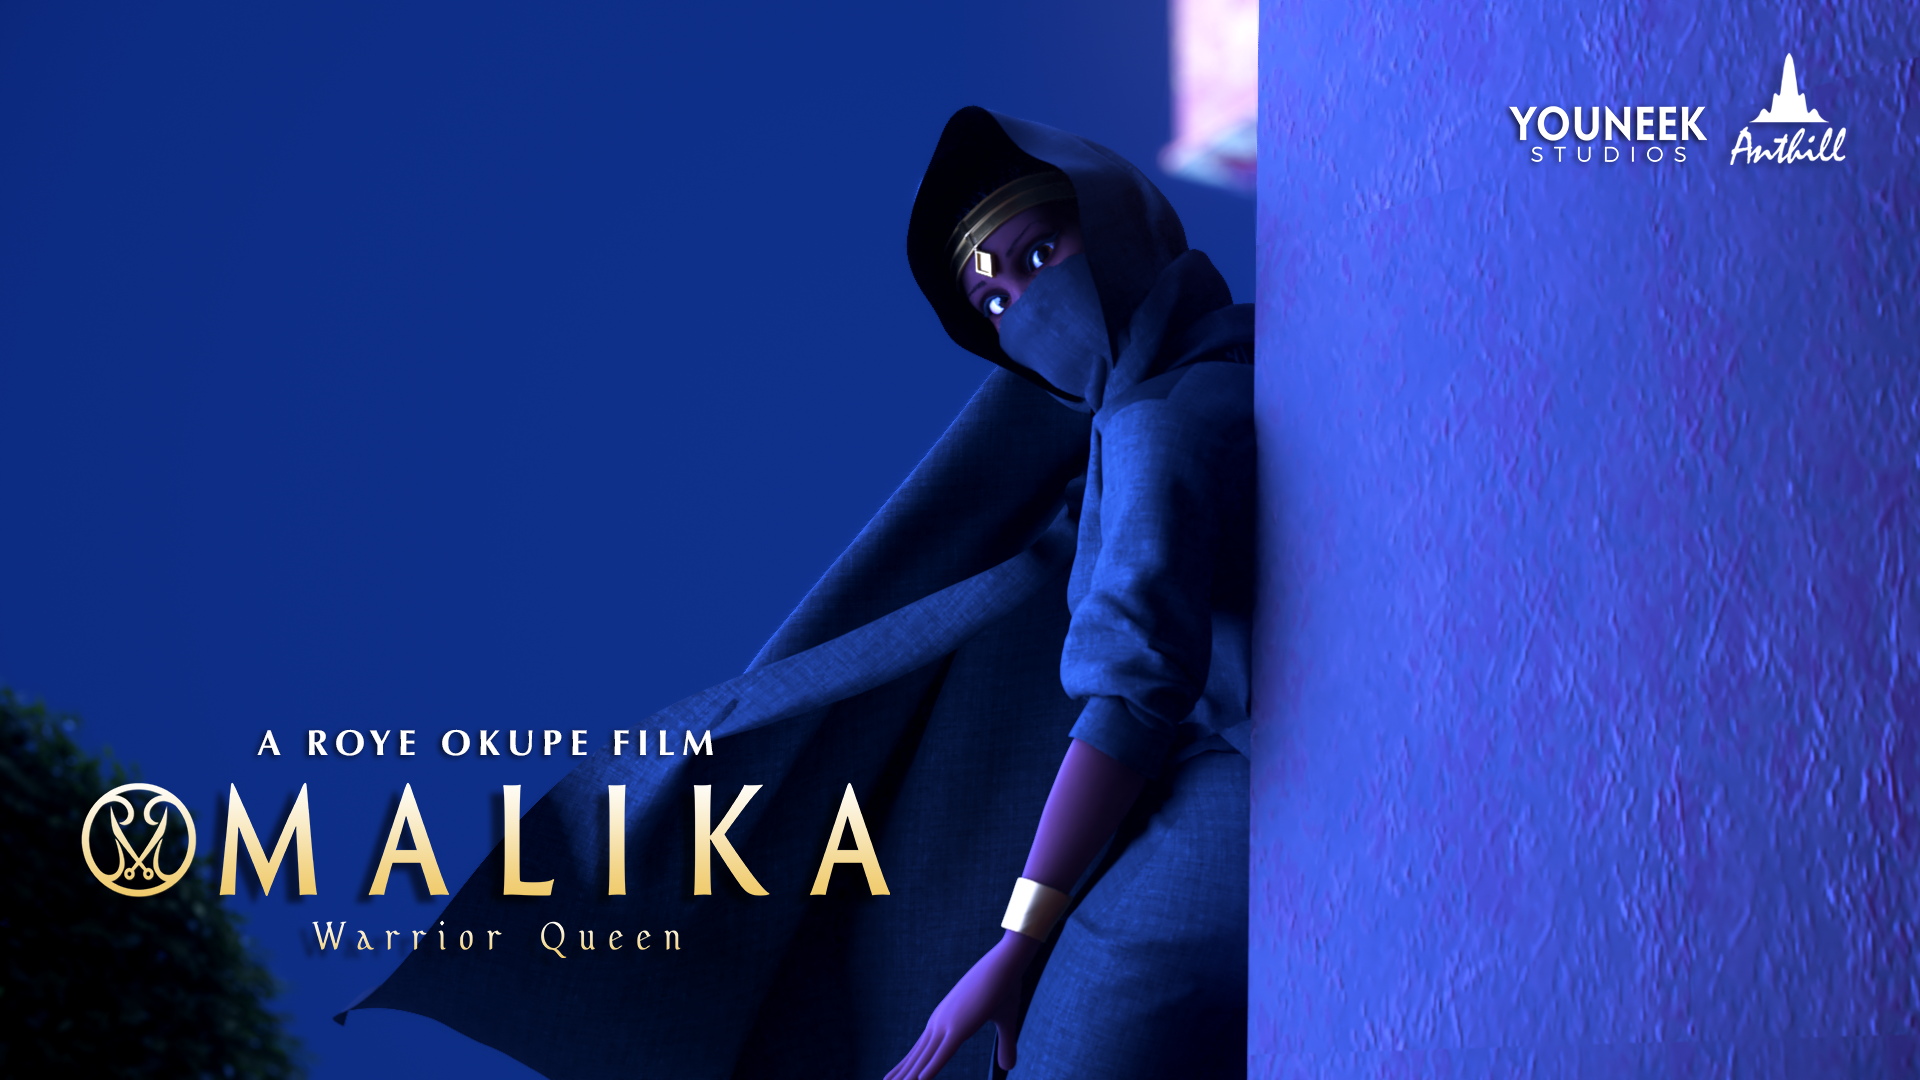 7 - From Comic Strip to Animation: Read Full Malika Story + Budget Details Exclusives